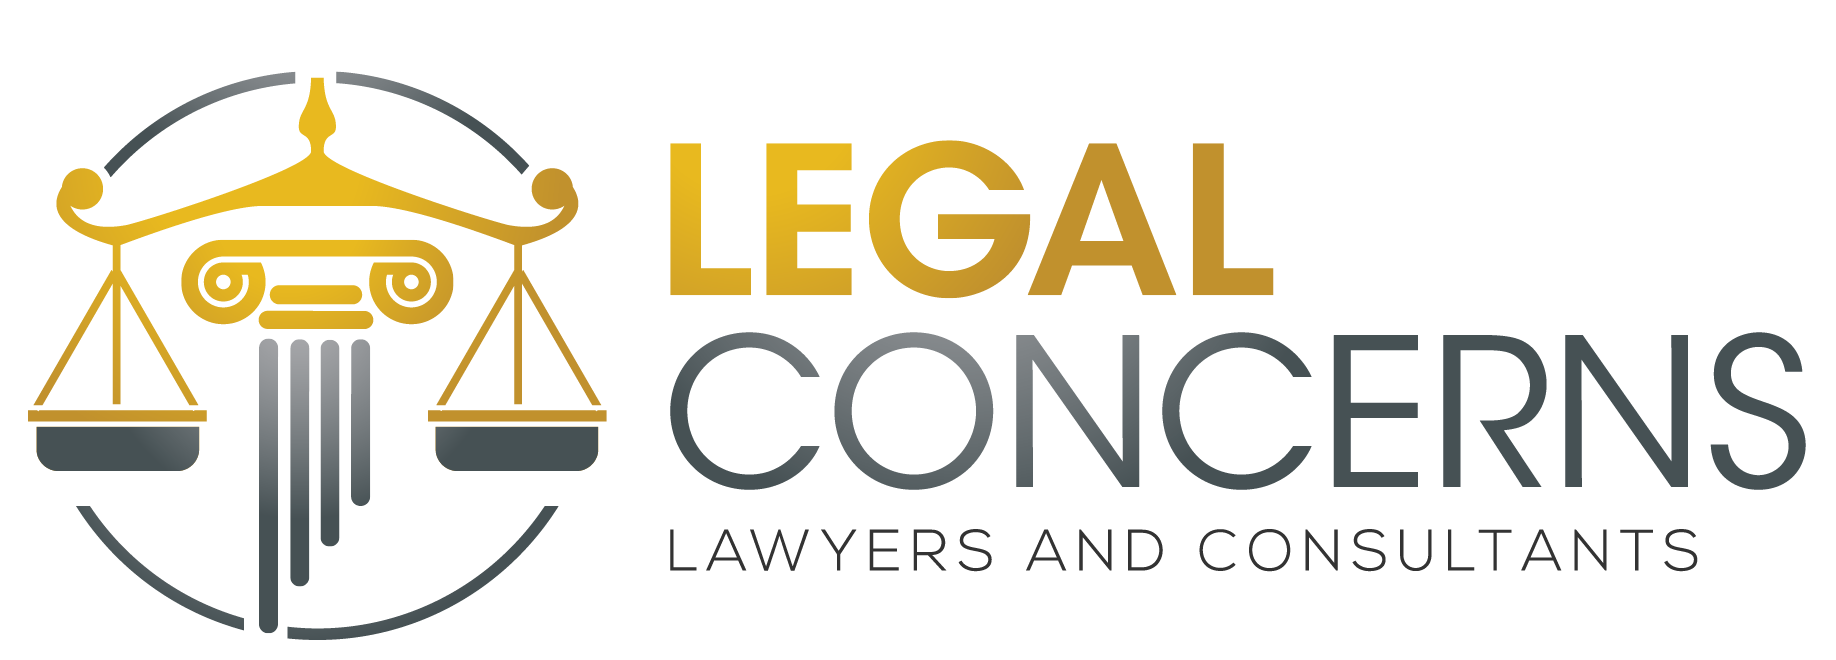 Legal Concerns Lawyers & Consultants